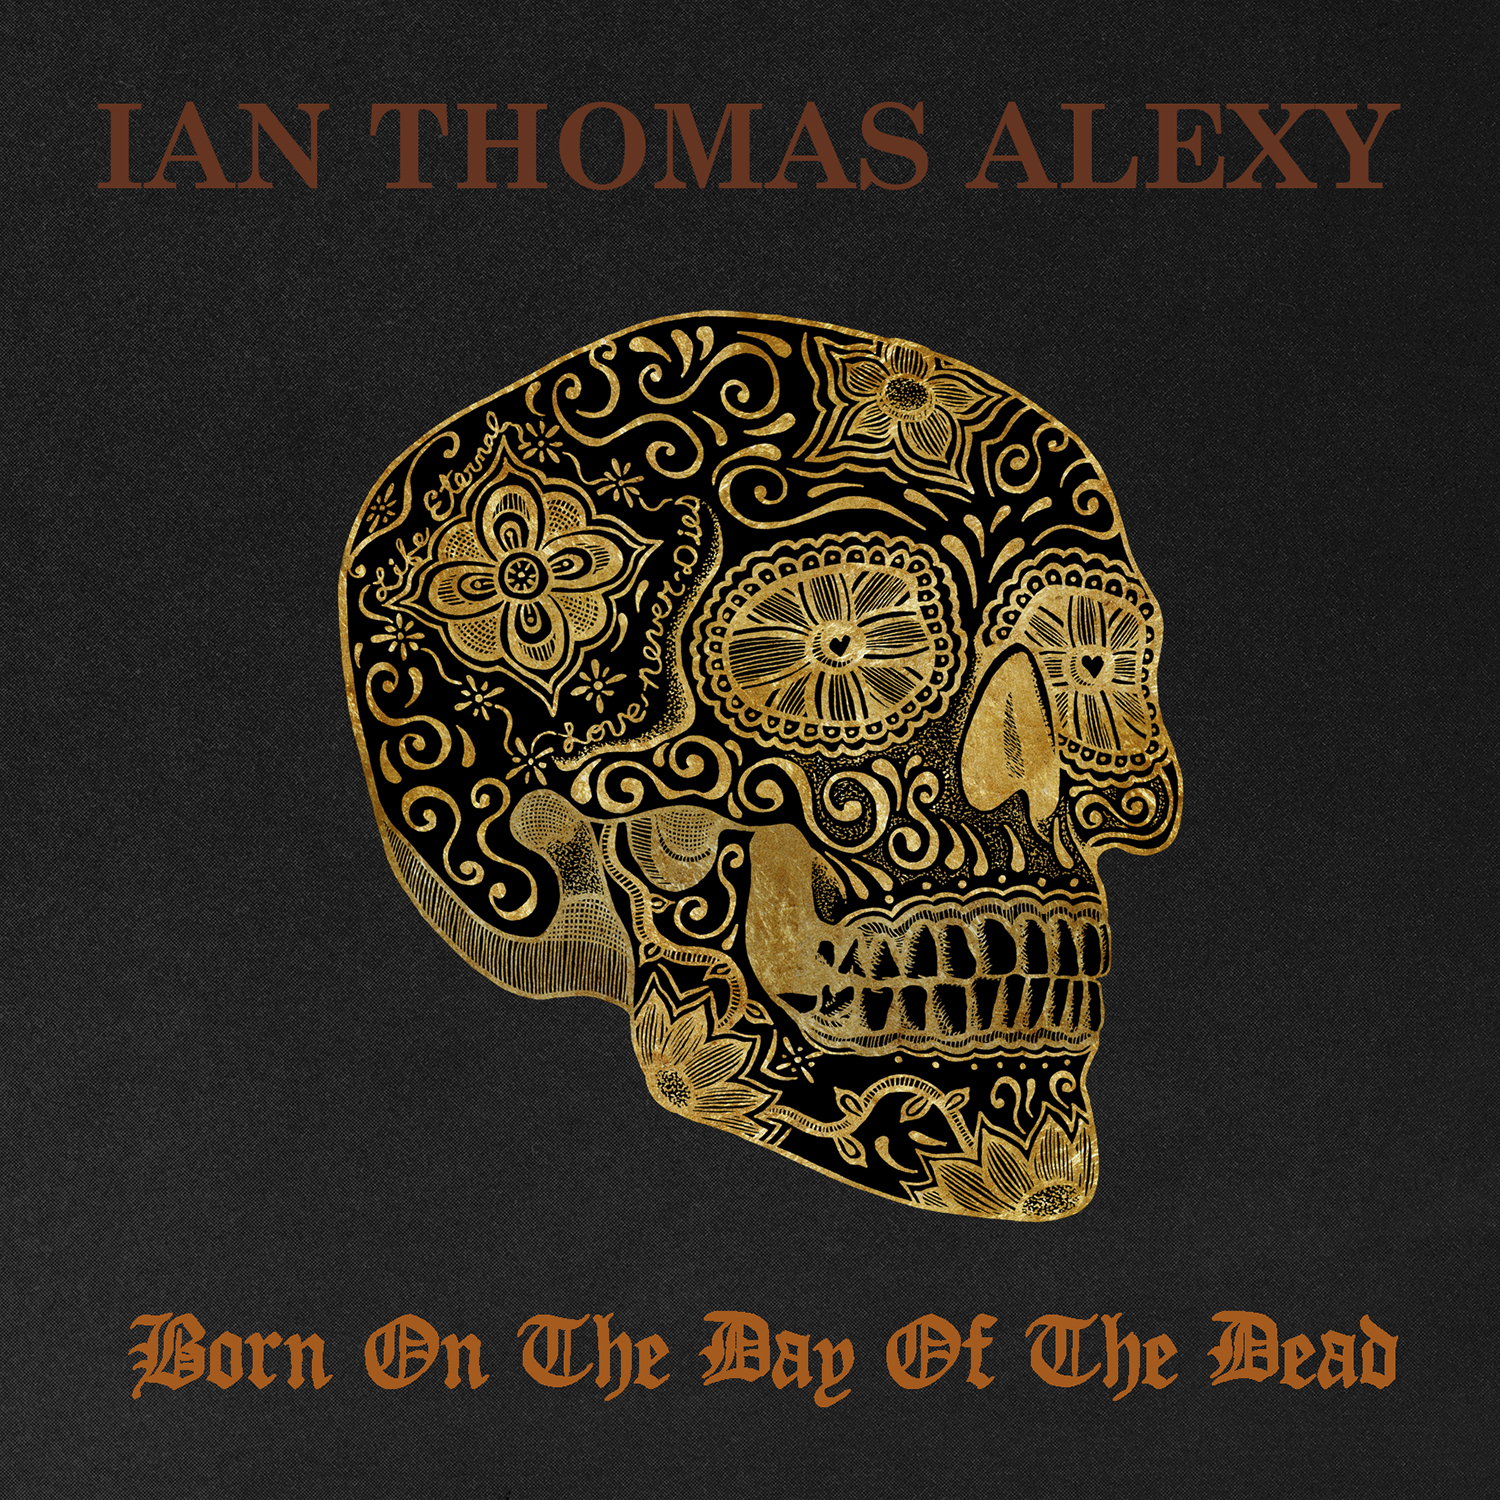 BORN ON THE DAY OF THE DEAD  CD  -  $10.99